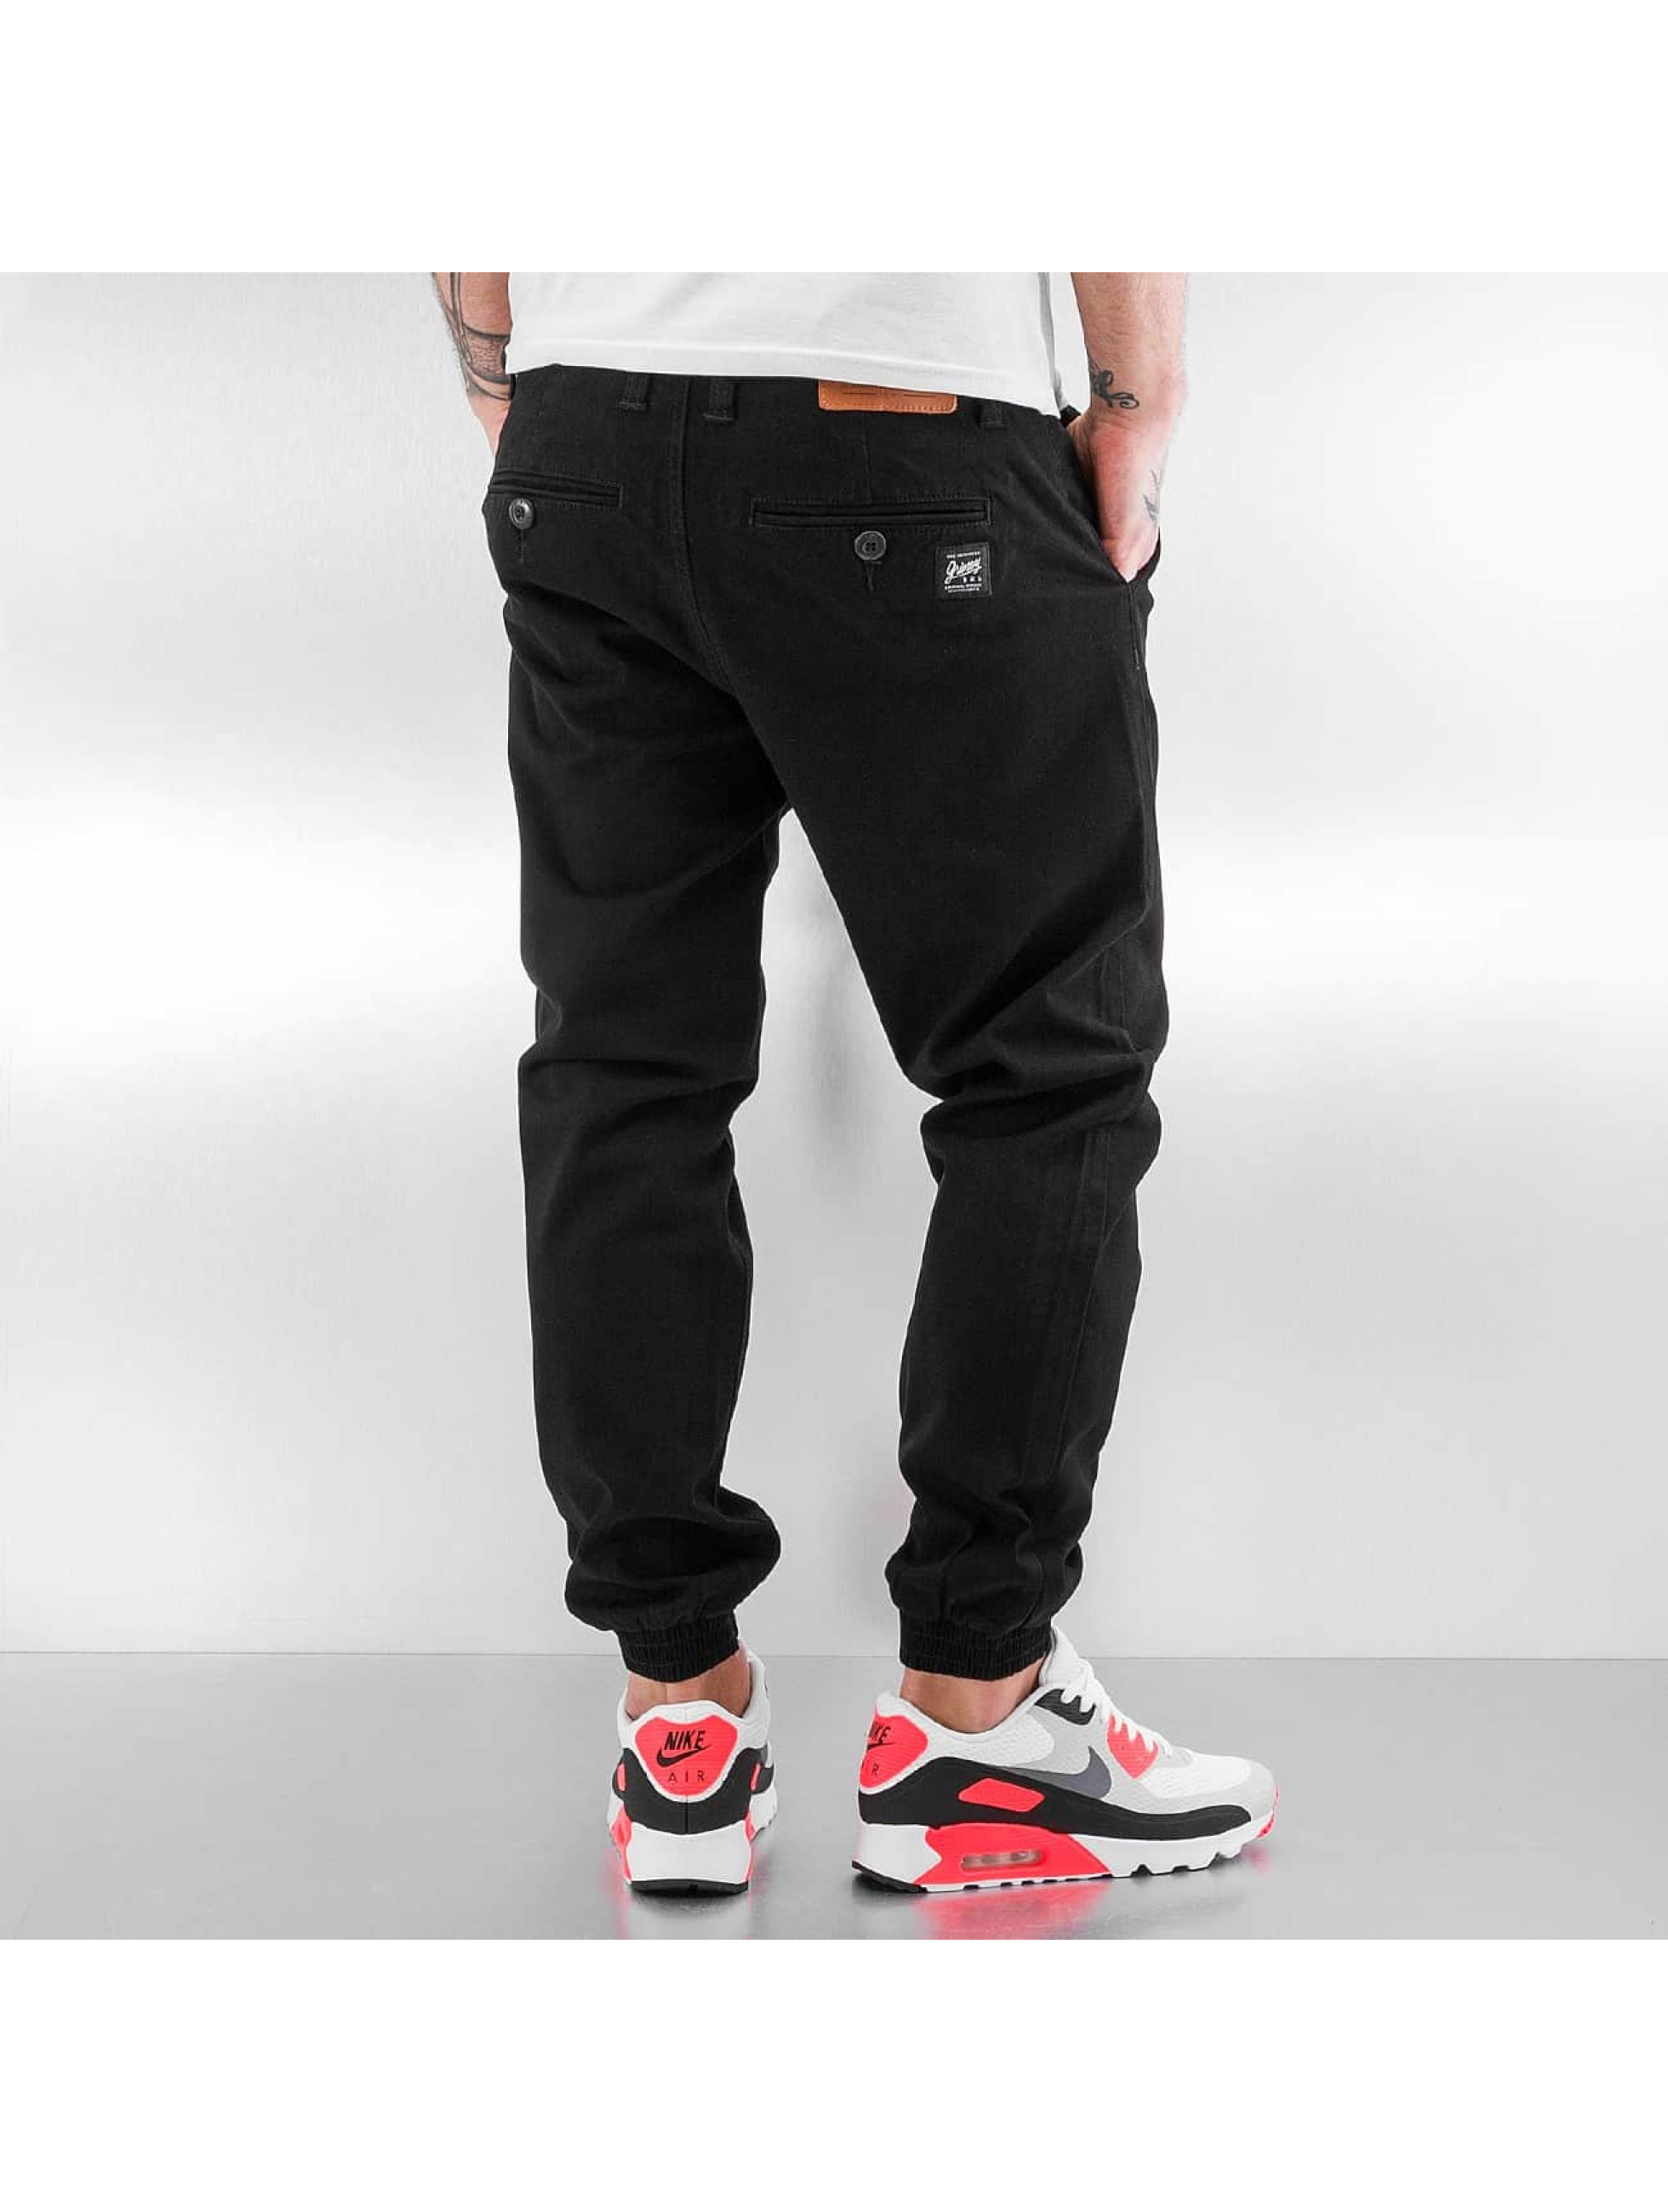 Grimey Wear Jogginghose Twill Peach schwarz